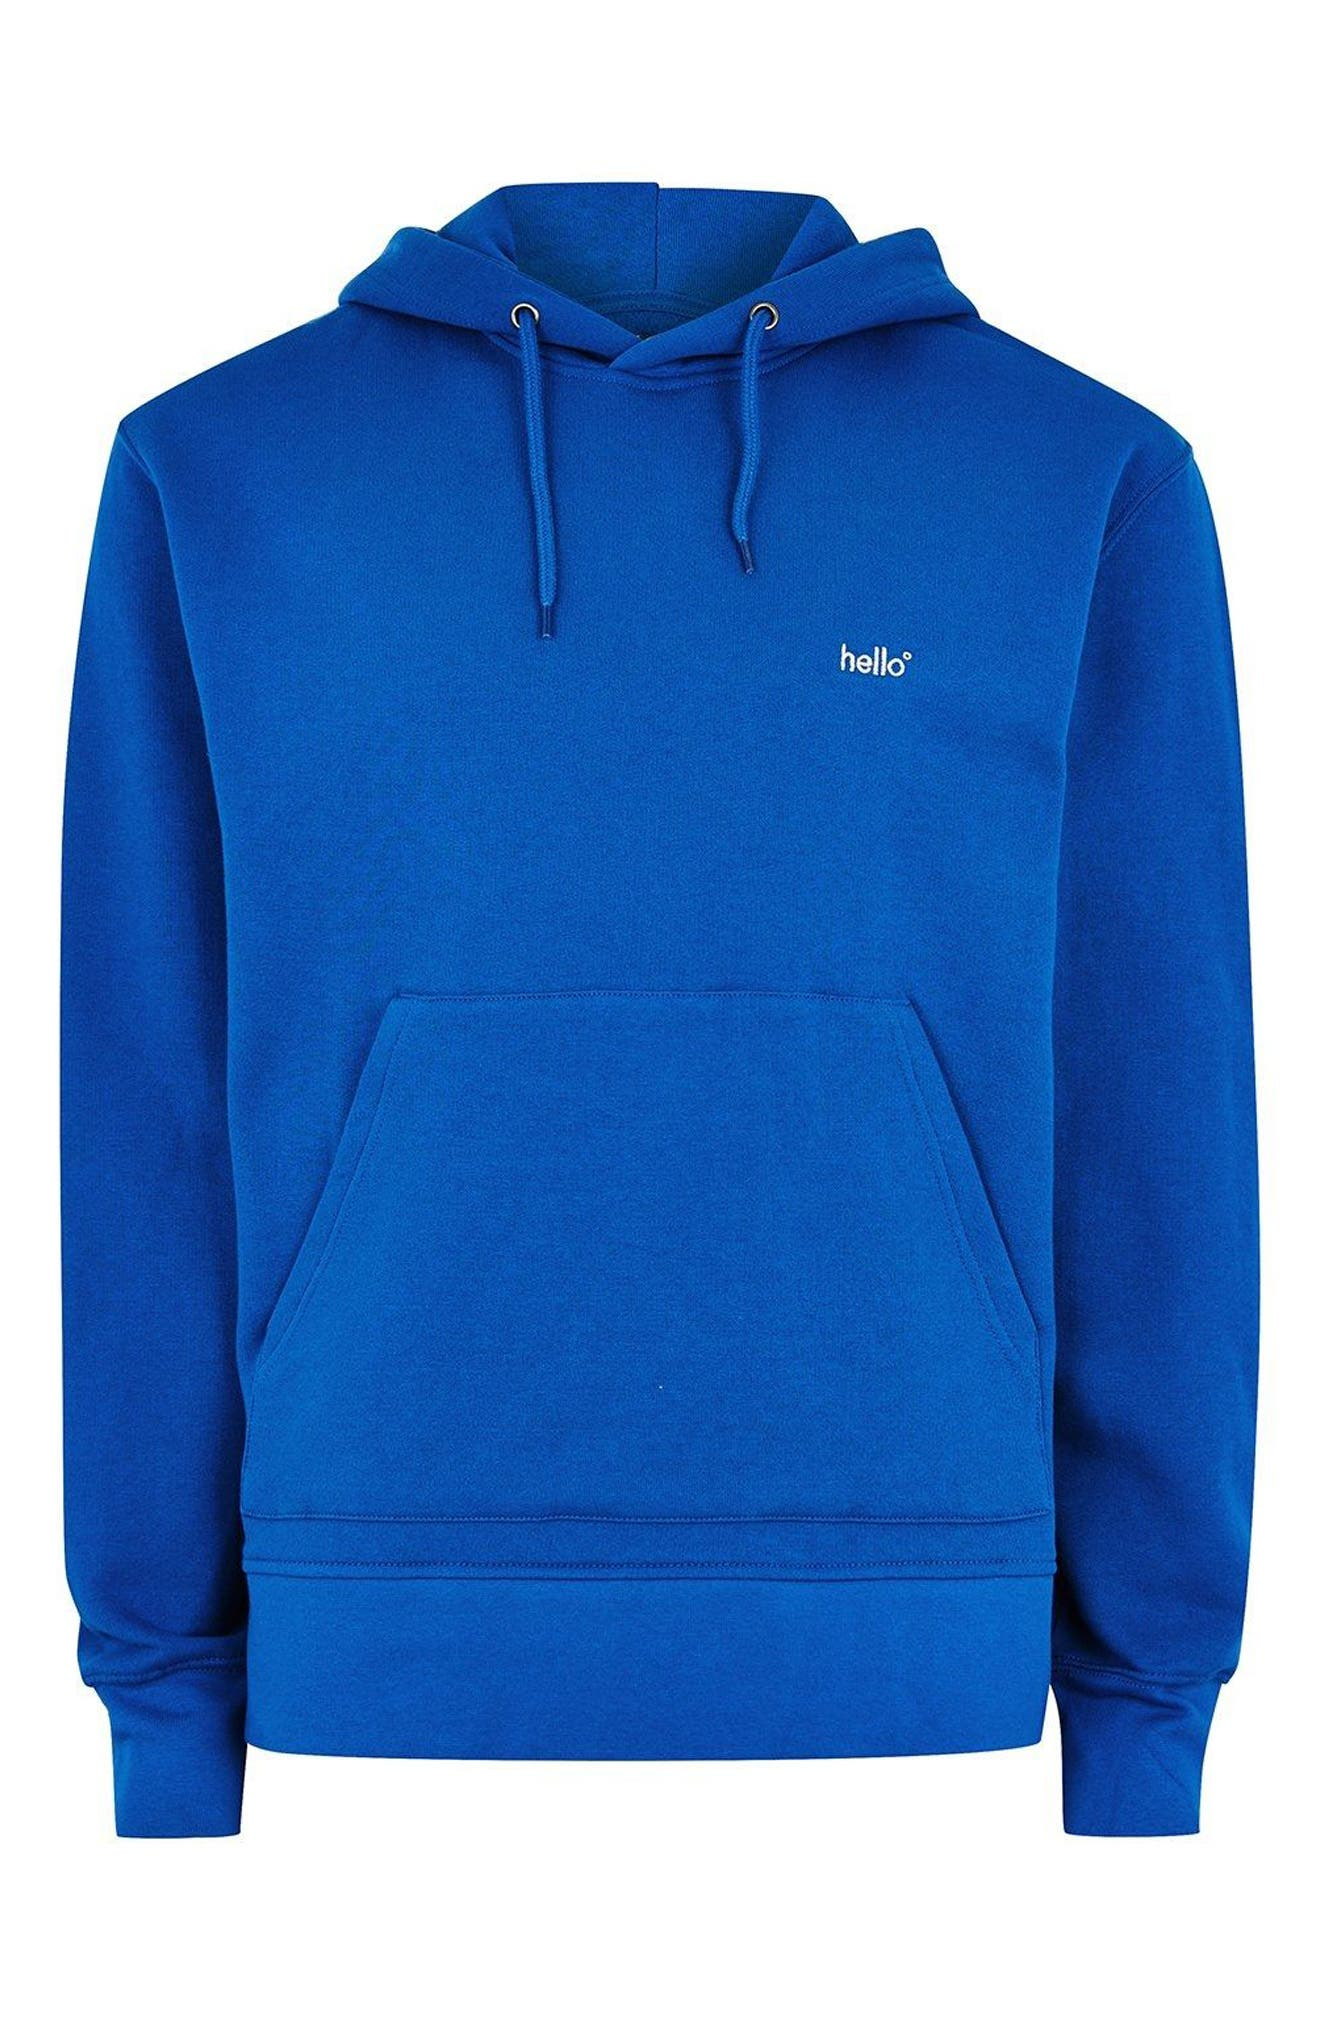 Classic Fit Tristan Hello Embroidered Hoodie,                             Alternate thumbnail 4, color,